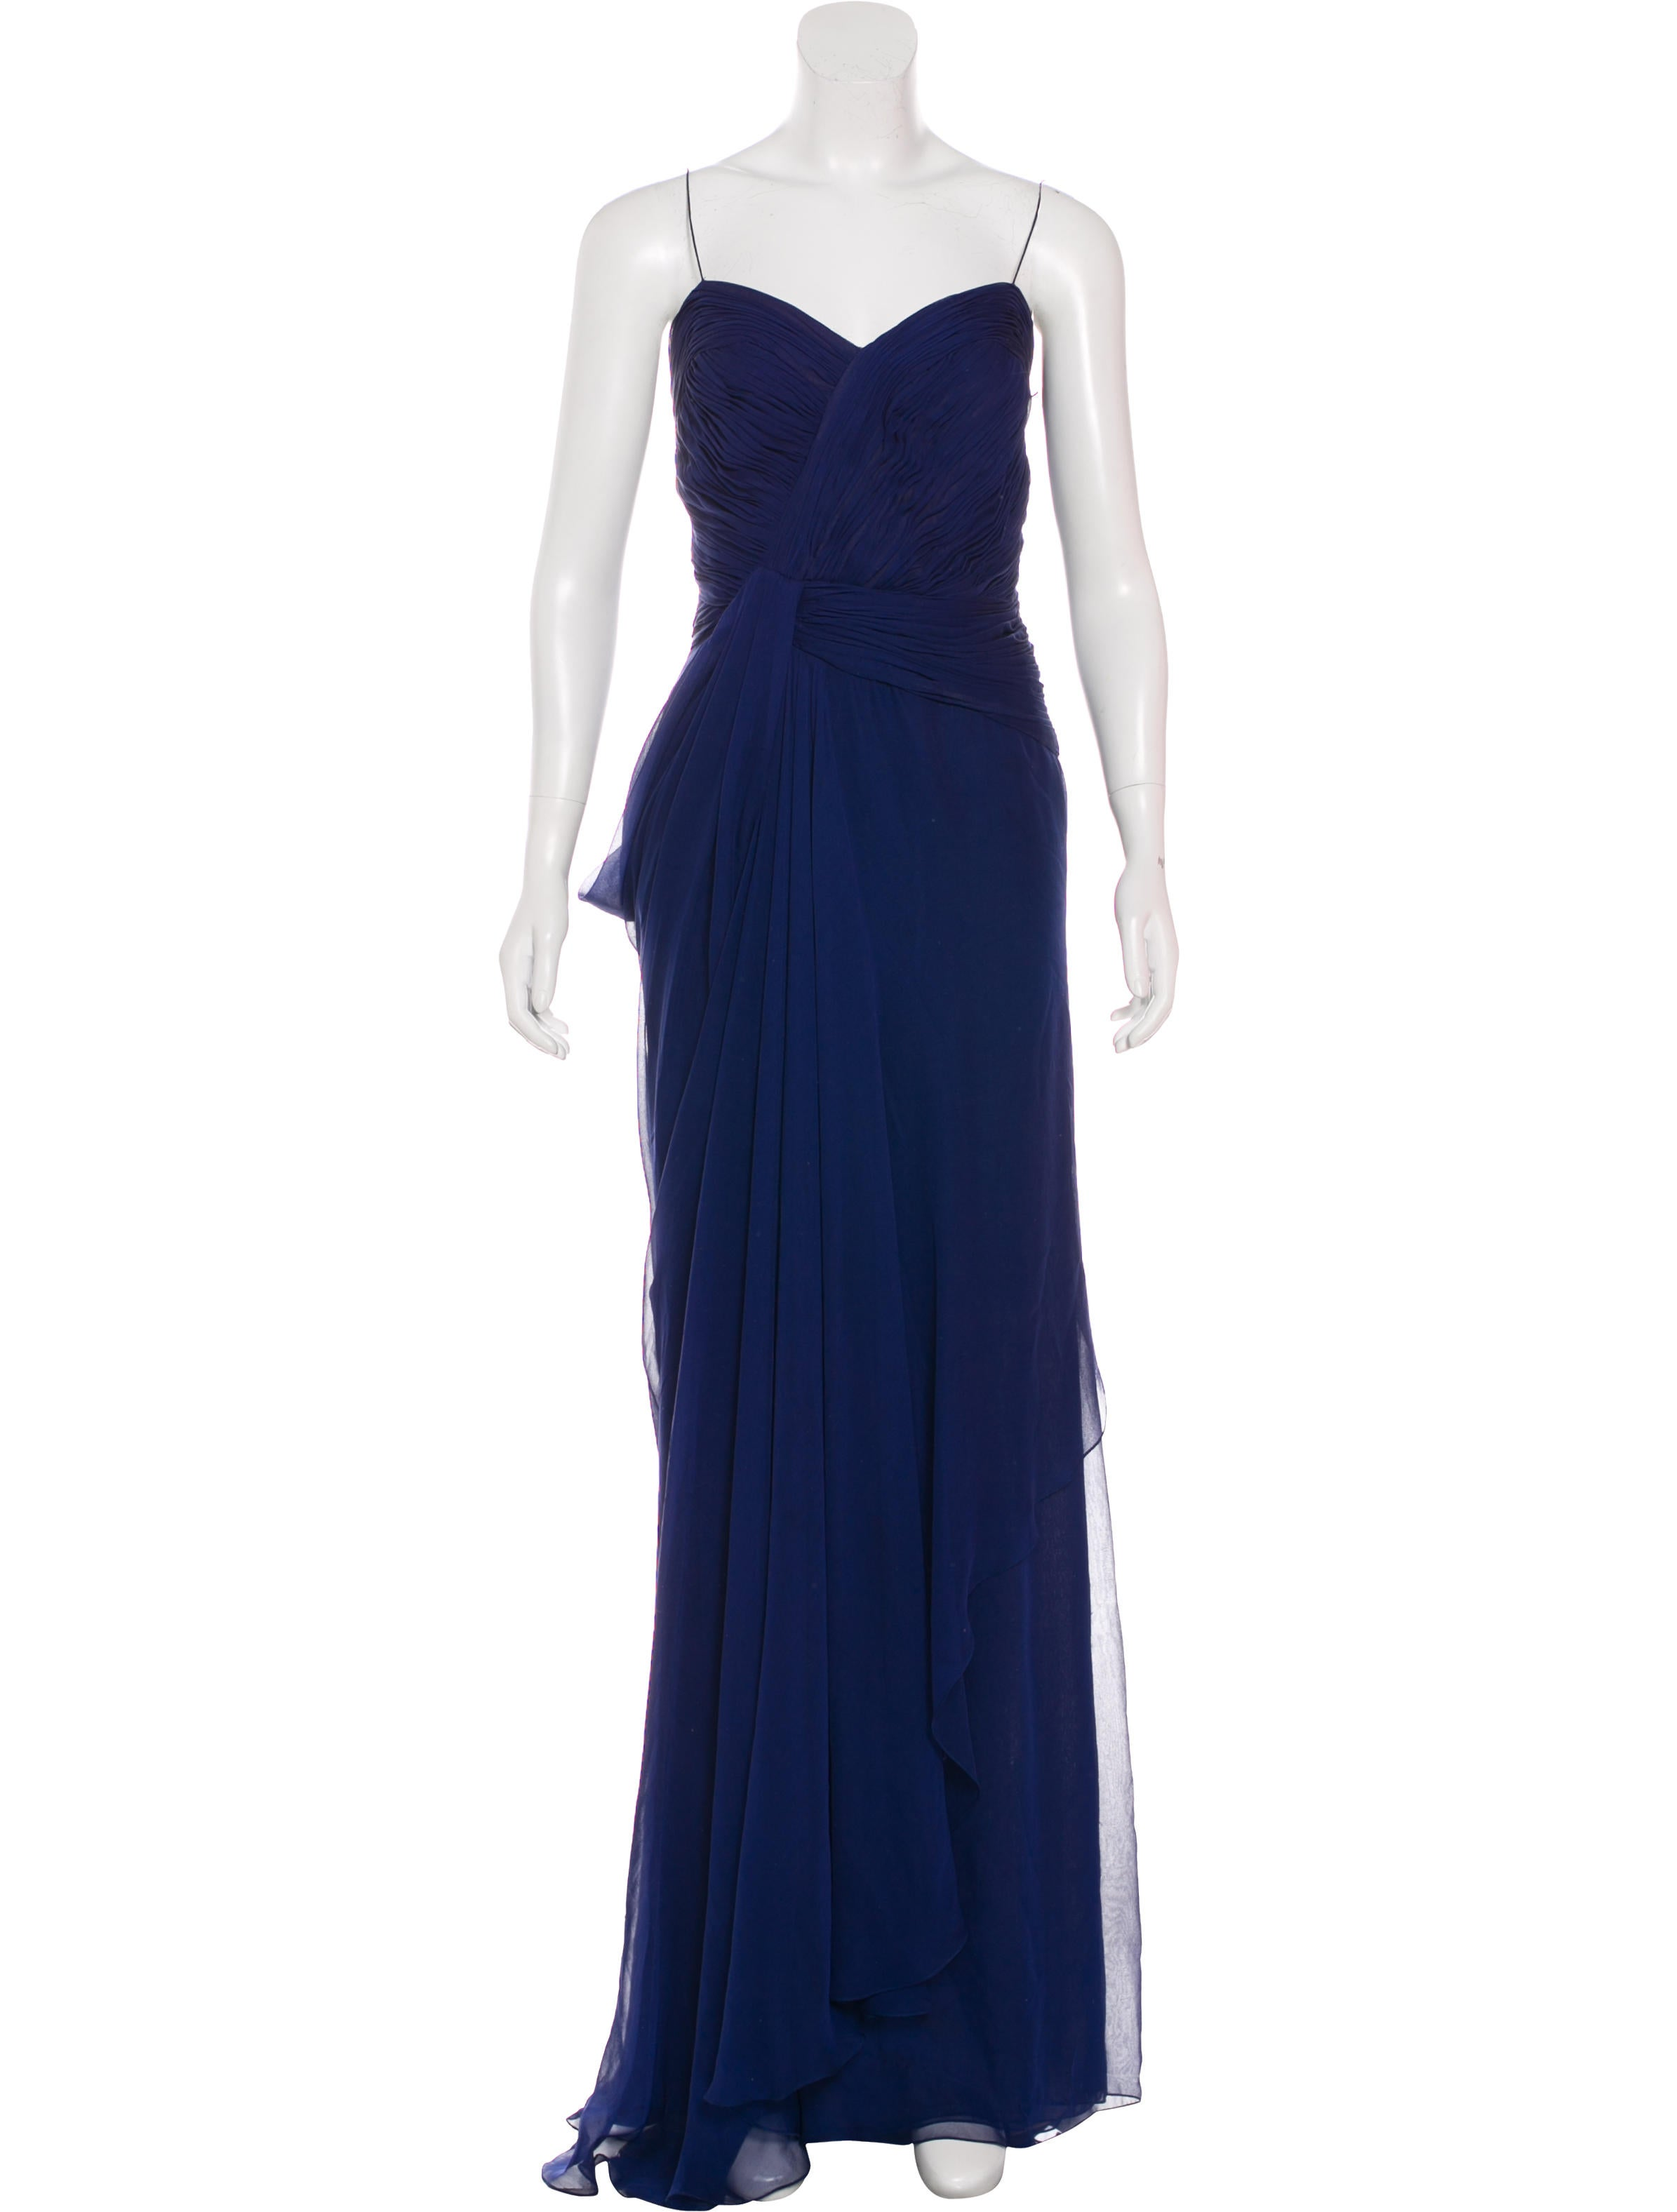 J. Mendel Silk Evening Gown - Clothing - JME25448 | The RealReal